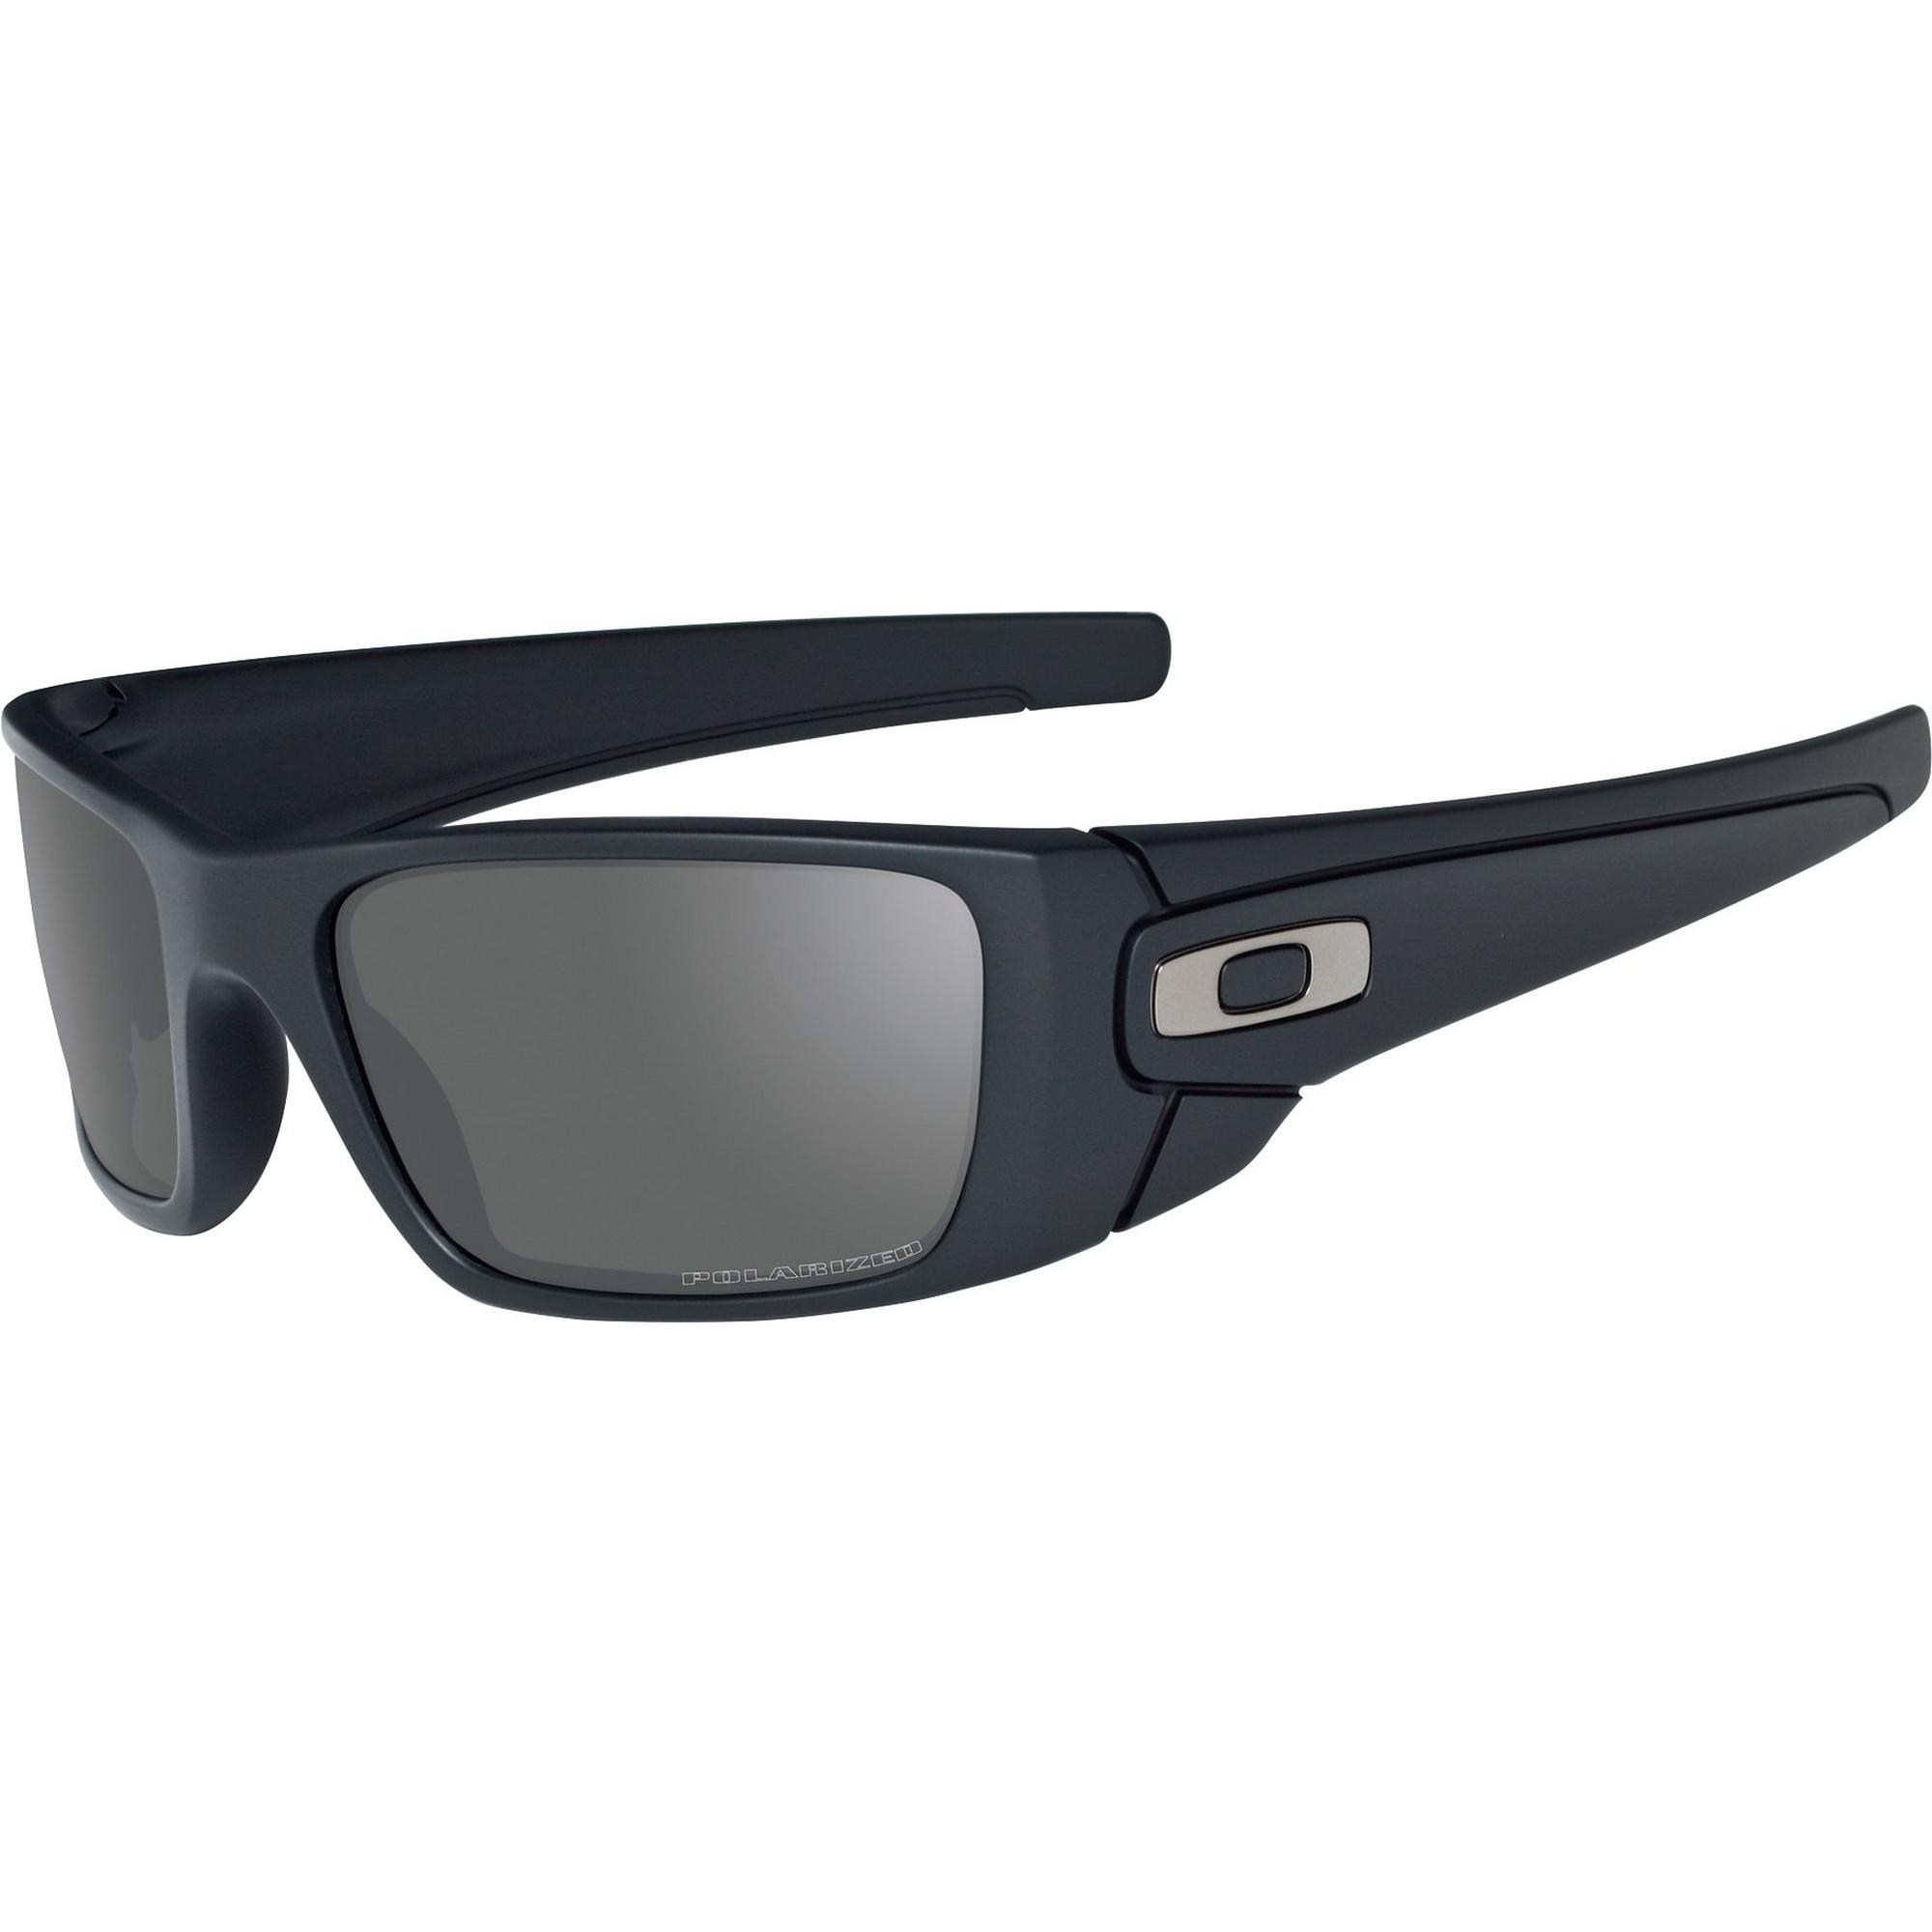 Fuel Cell Polarized Lens